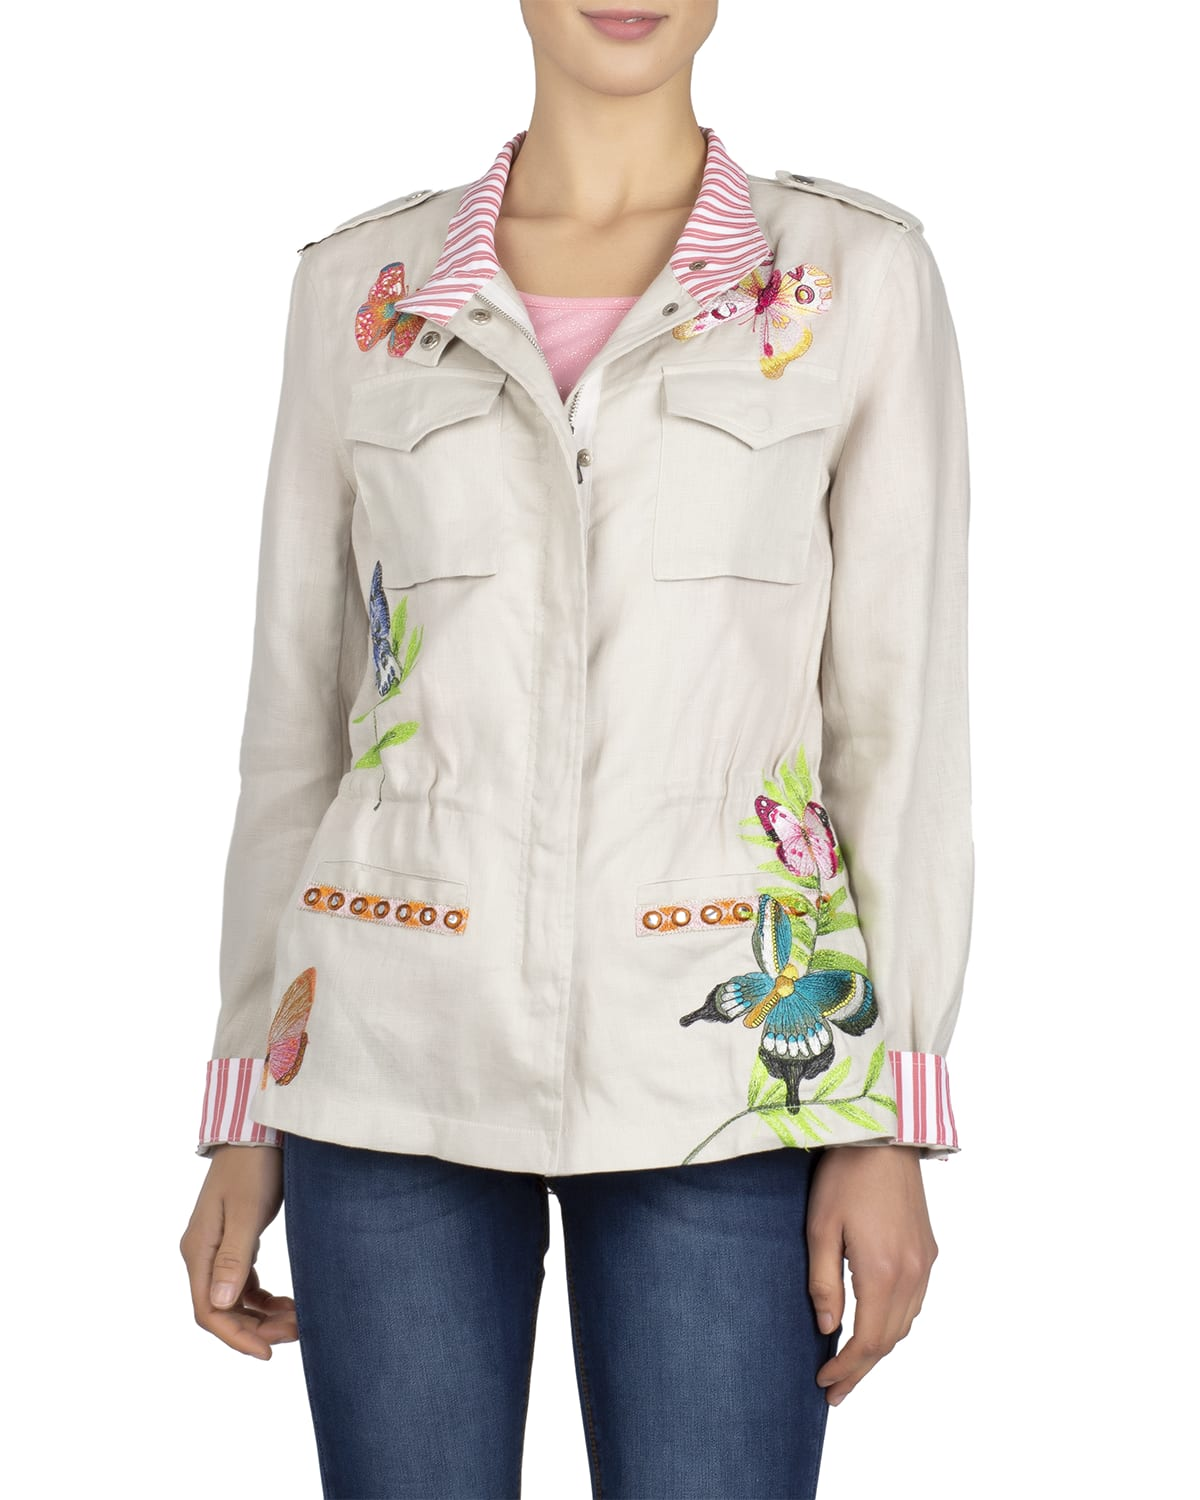 Butterfly Embroidered Linen Anorack Jacket